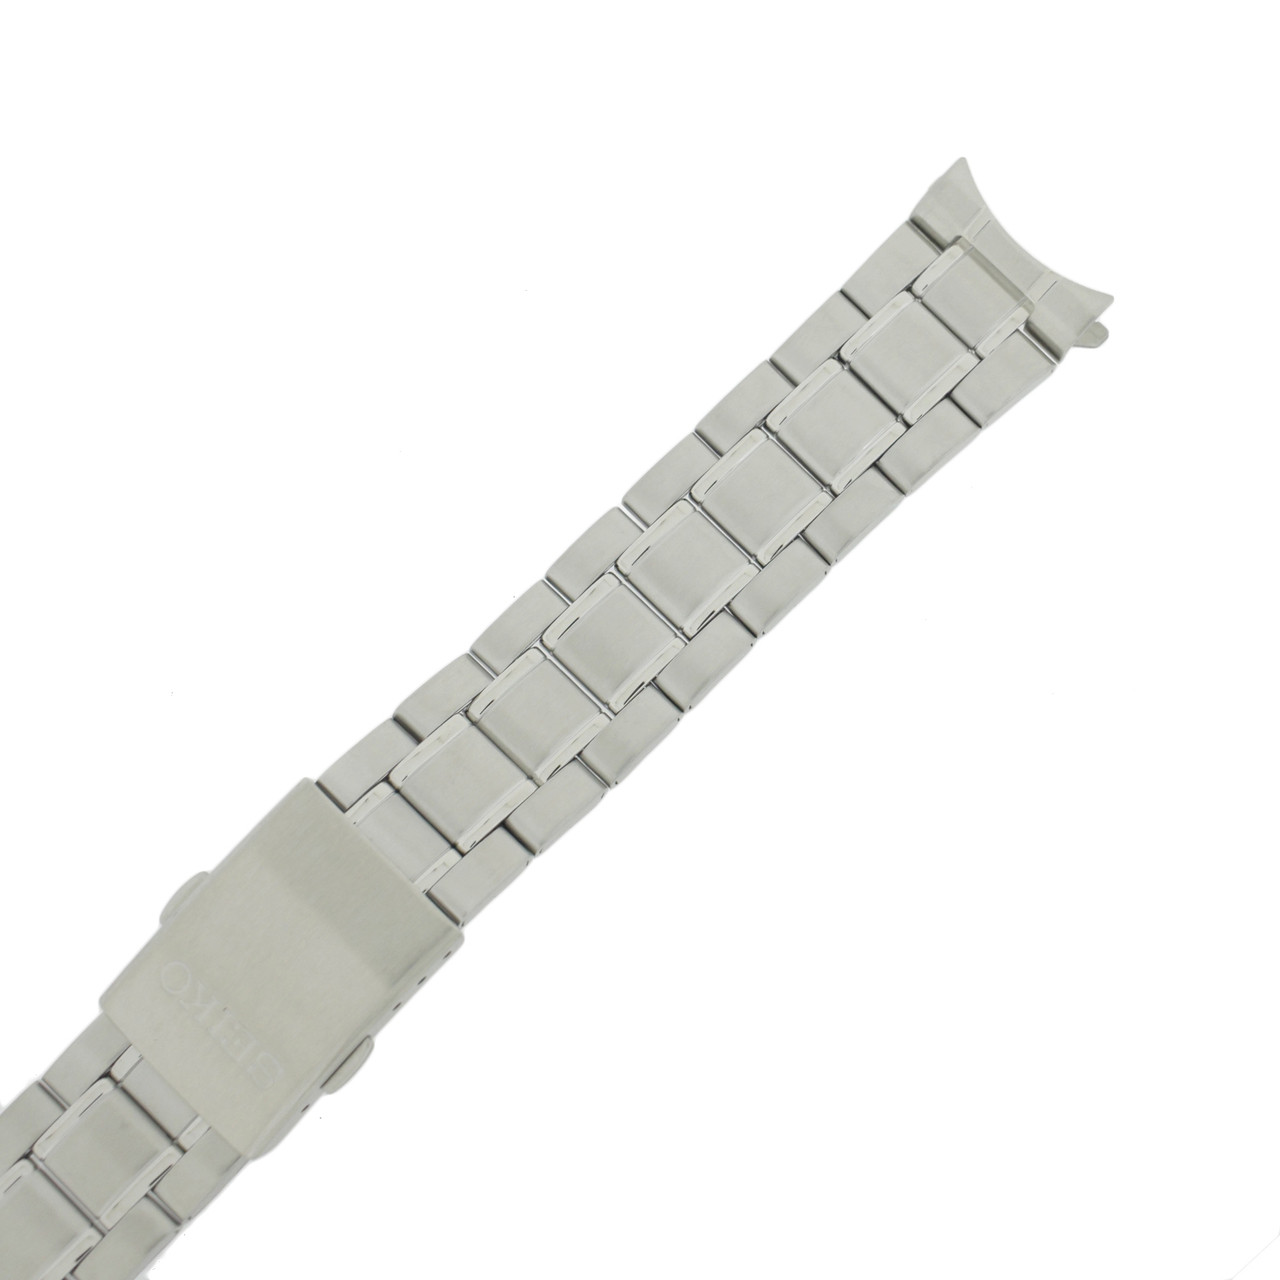 Seiko Stainless Steel Watch Band 20mm and Genuine Seiko Spring Bars